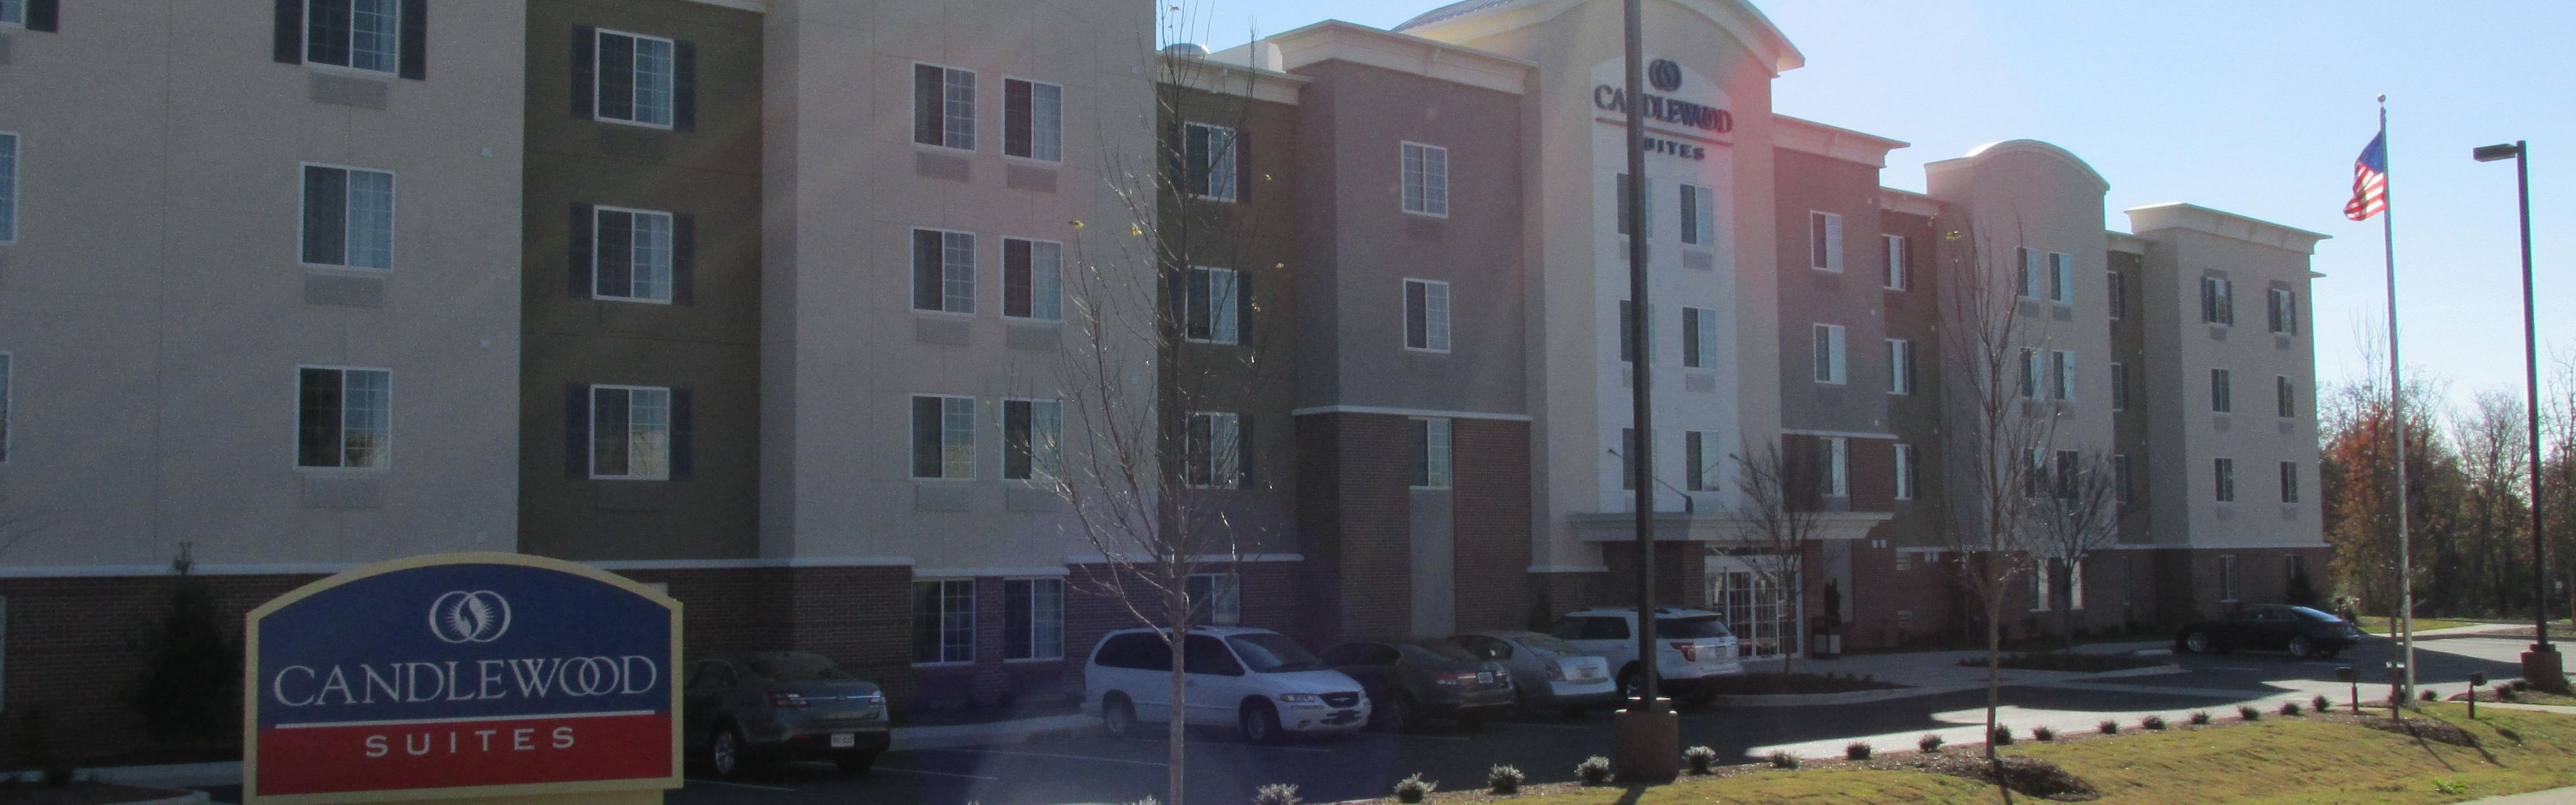 Candlewood Suites Greenville image 0